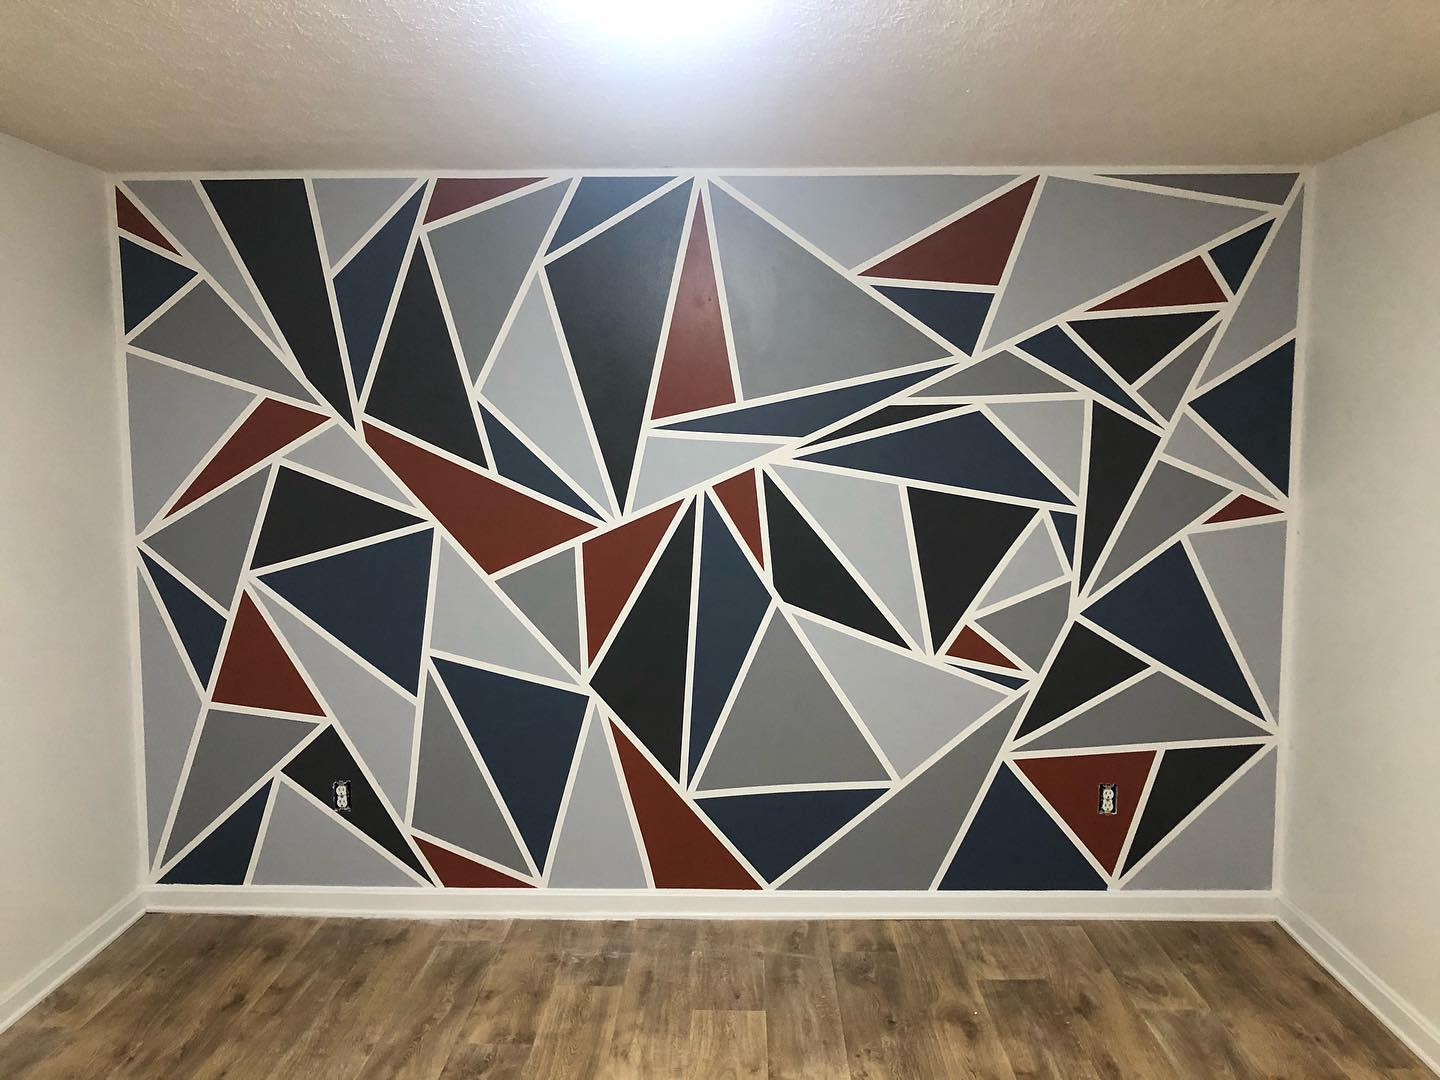 Geometric Wall Painting Ideas -dilan.arnold